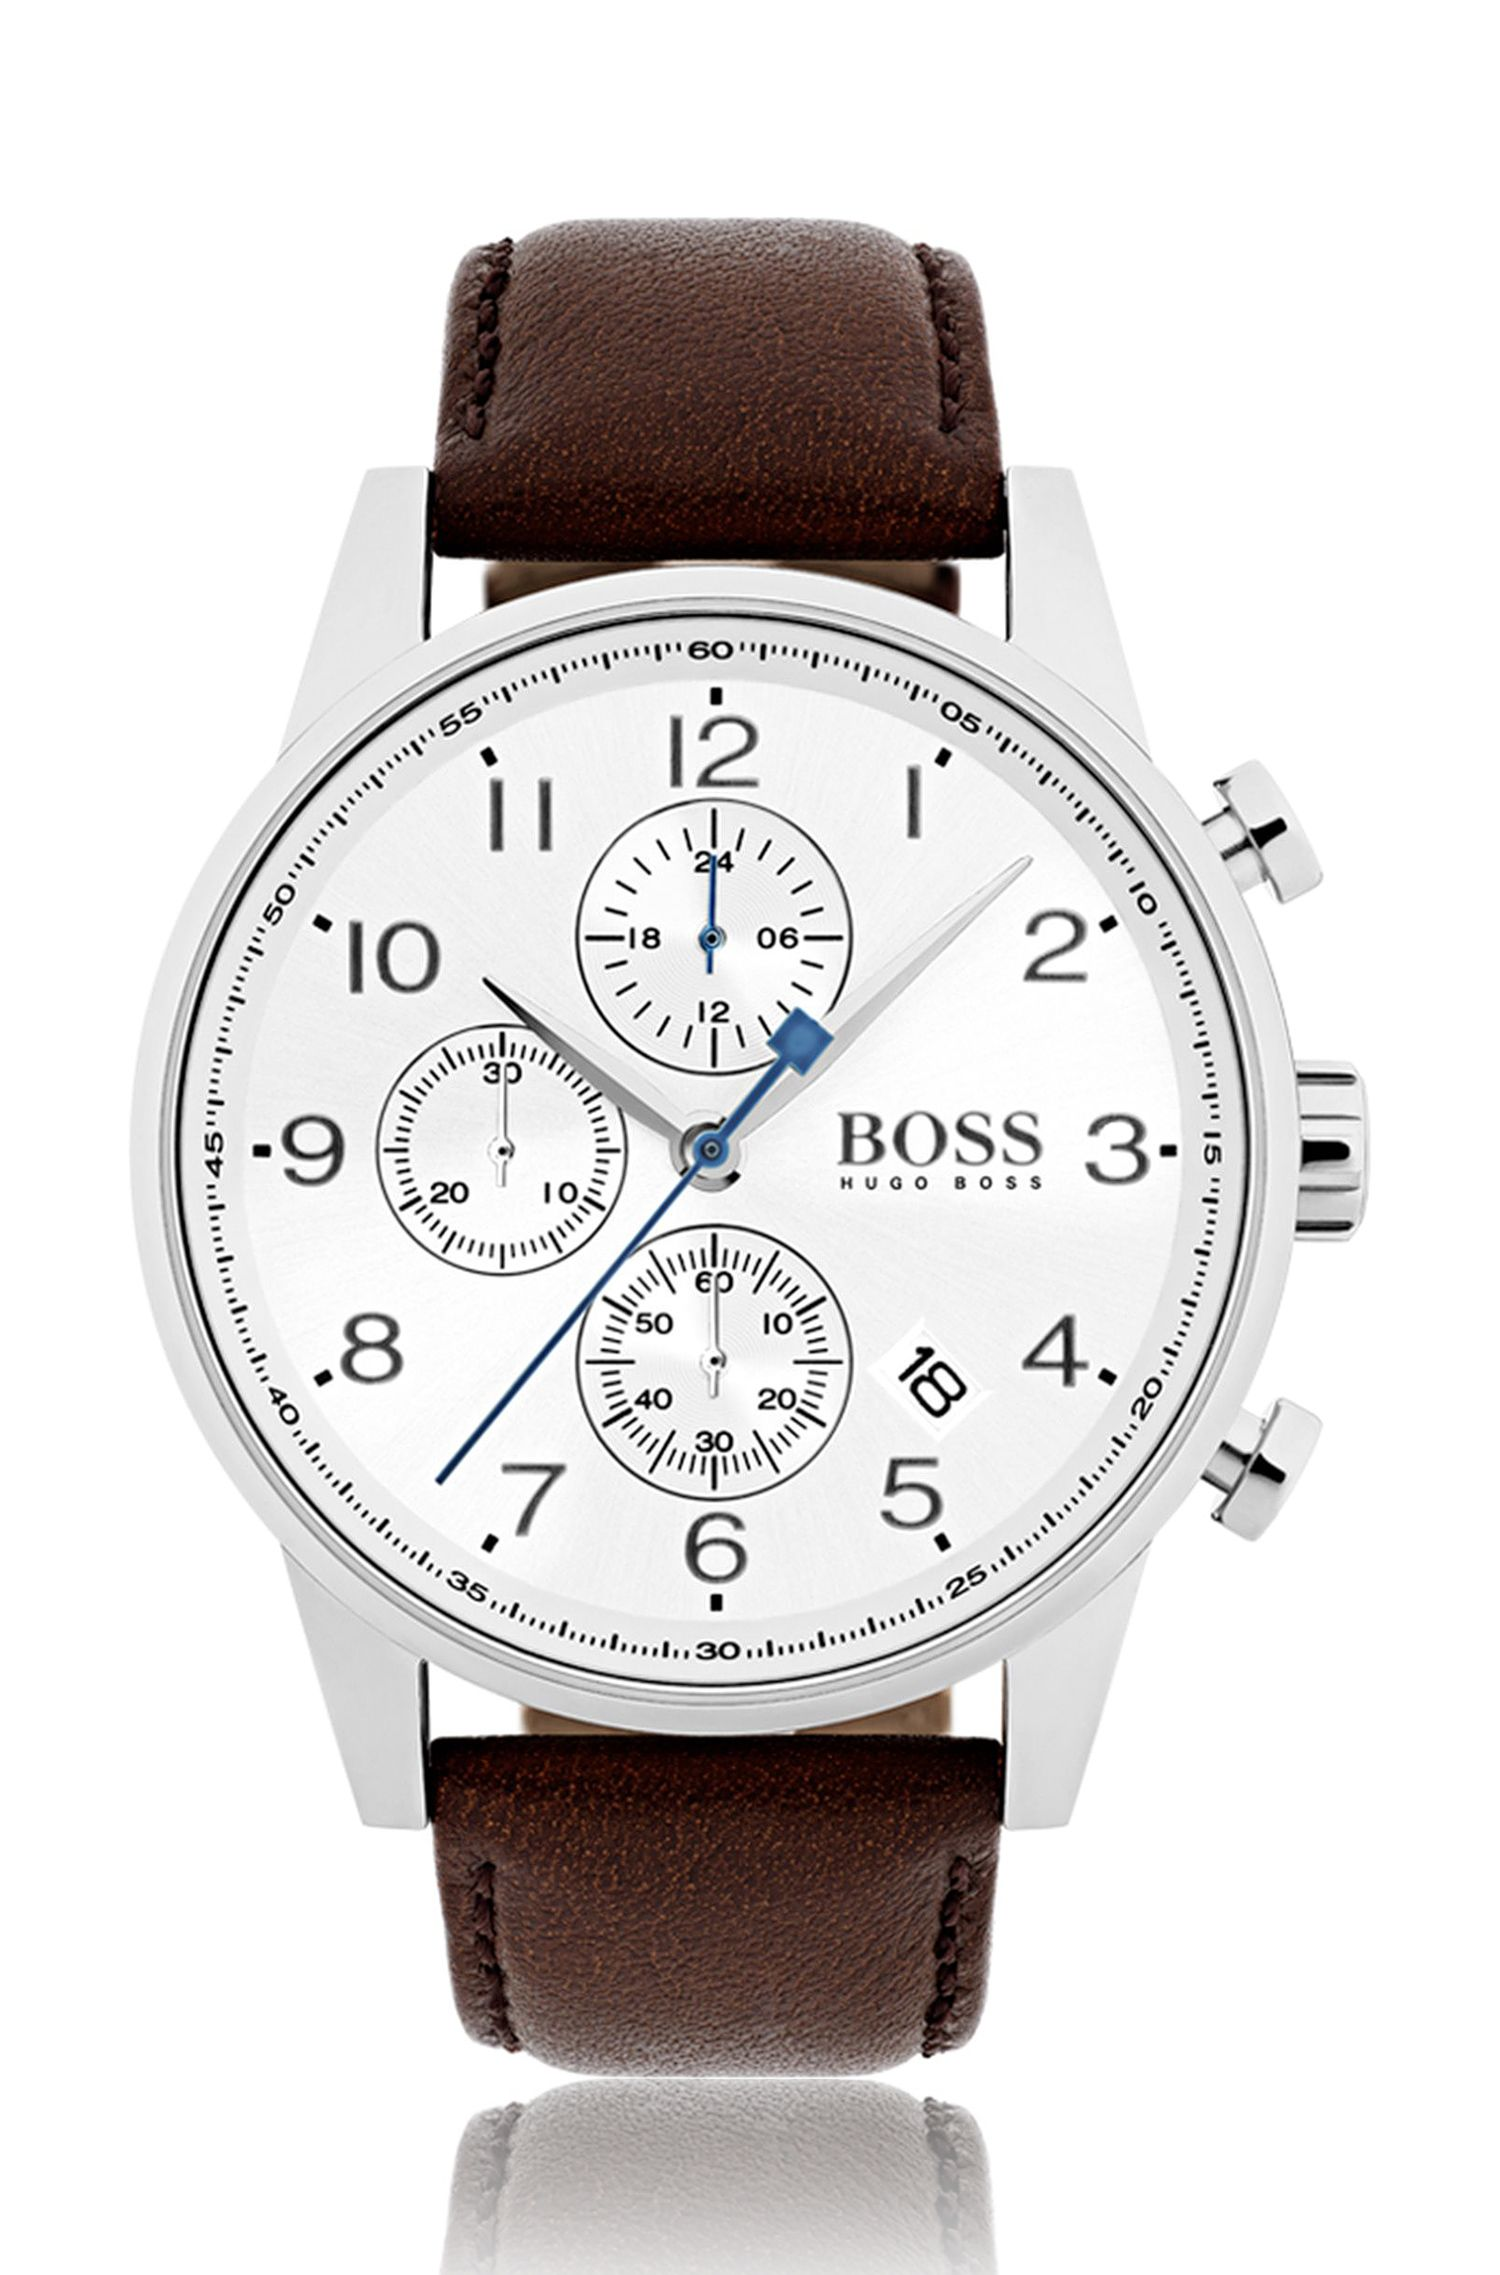 Polished stainless-steel watch with silver-white dial and leather strap